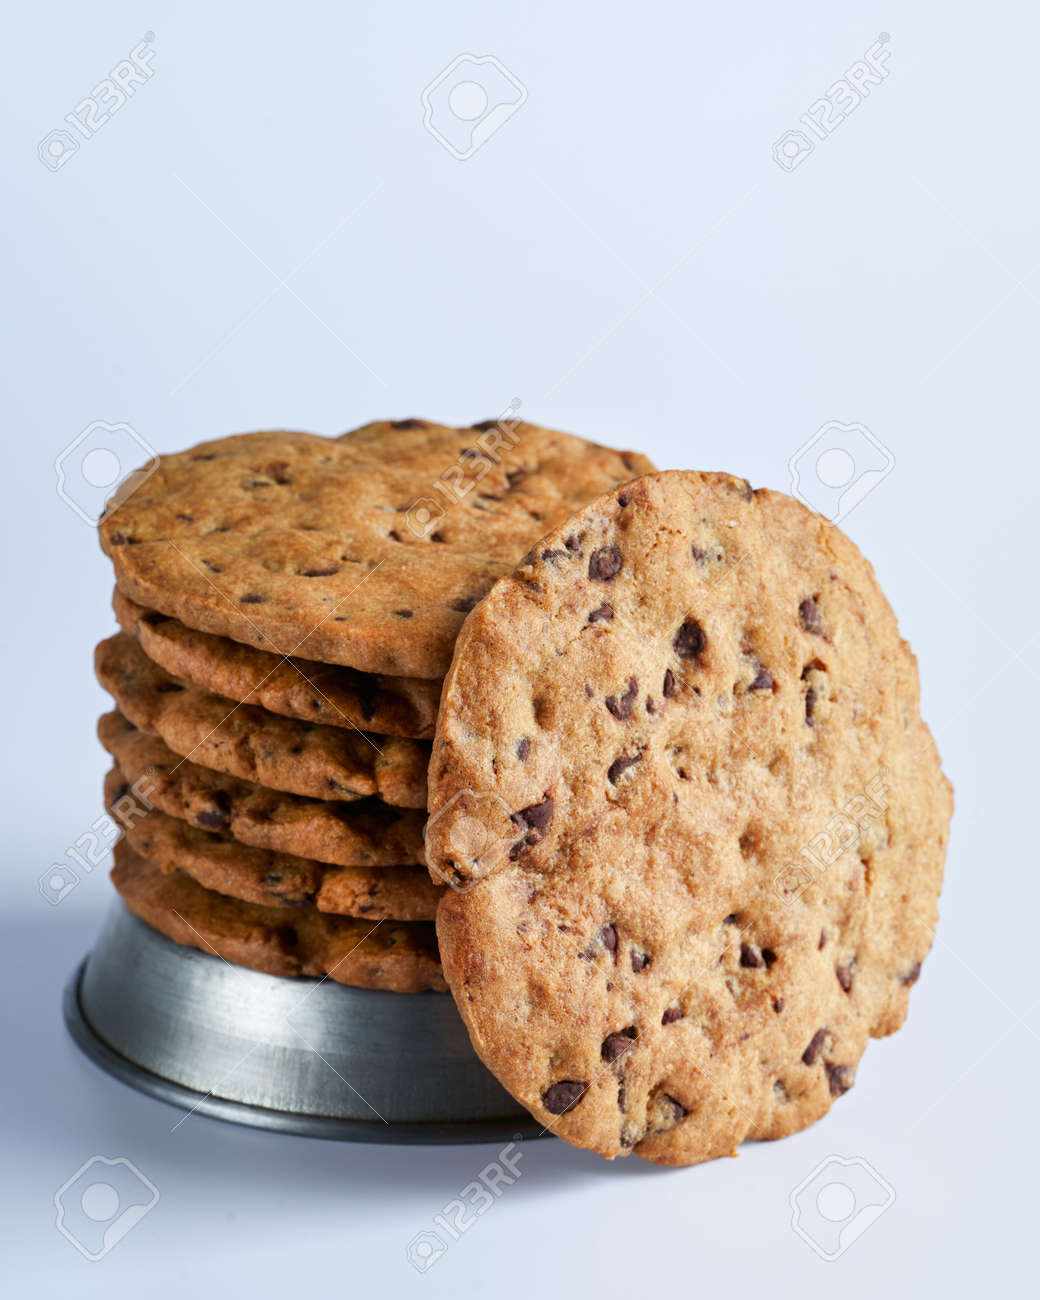 Big Soft and Crumbly Chocolate Chip Cookies. Close up view, selective focus, space for text. Sweets for sale in supermarket. Natural and proximity products. - 169659267